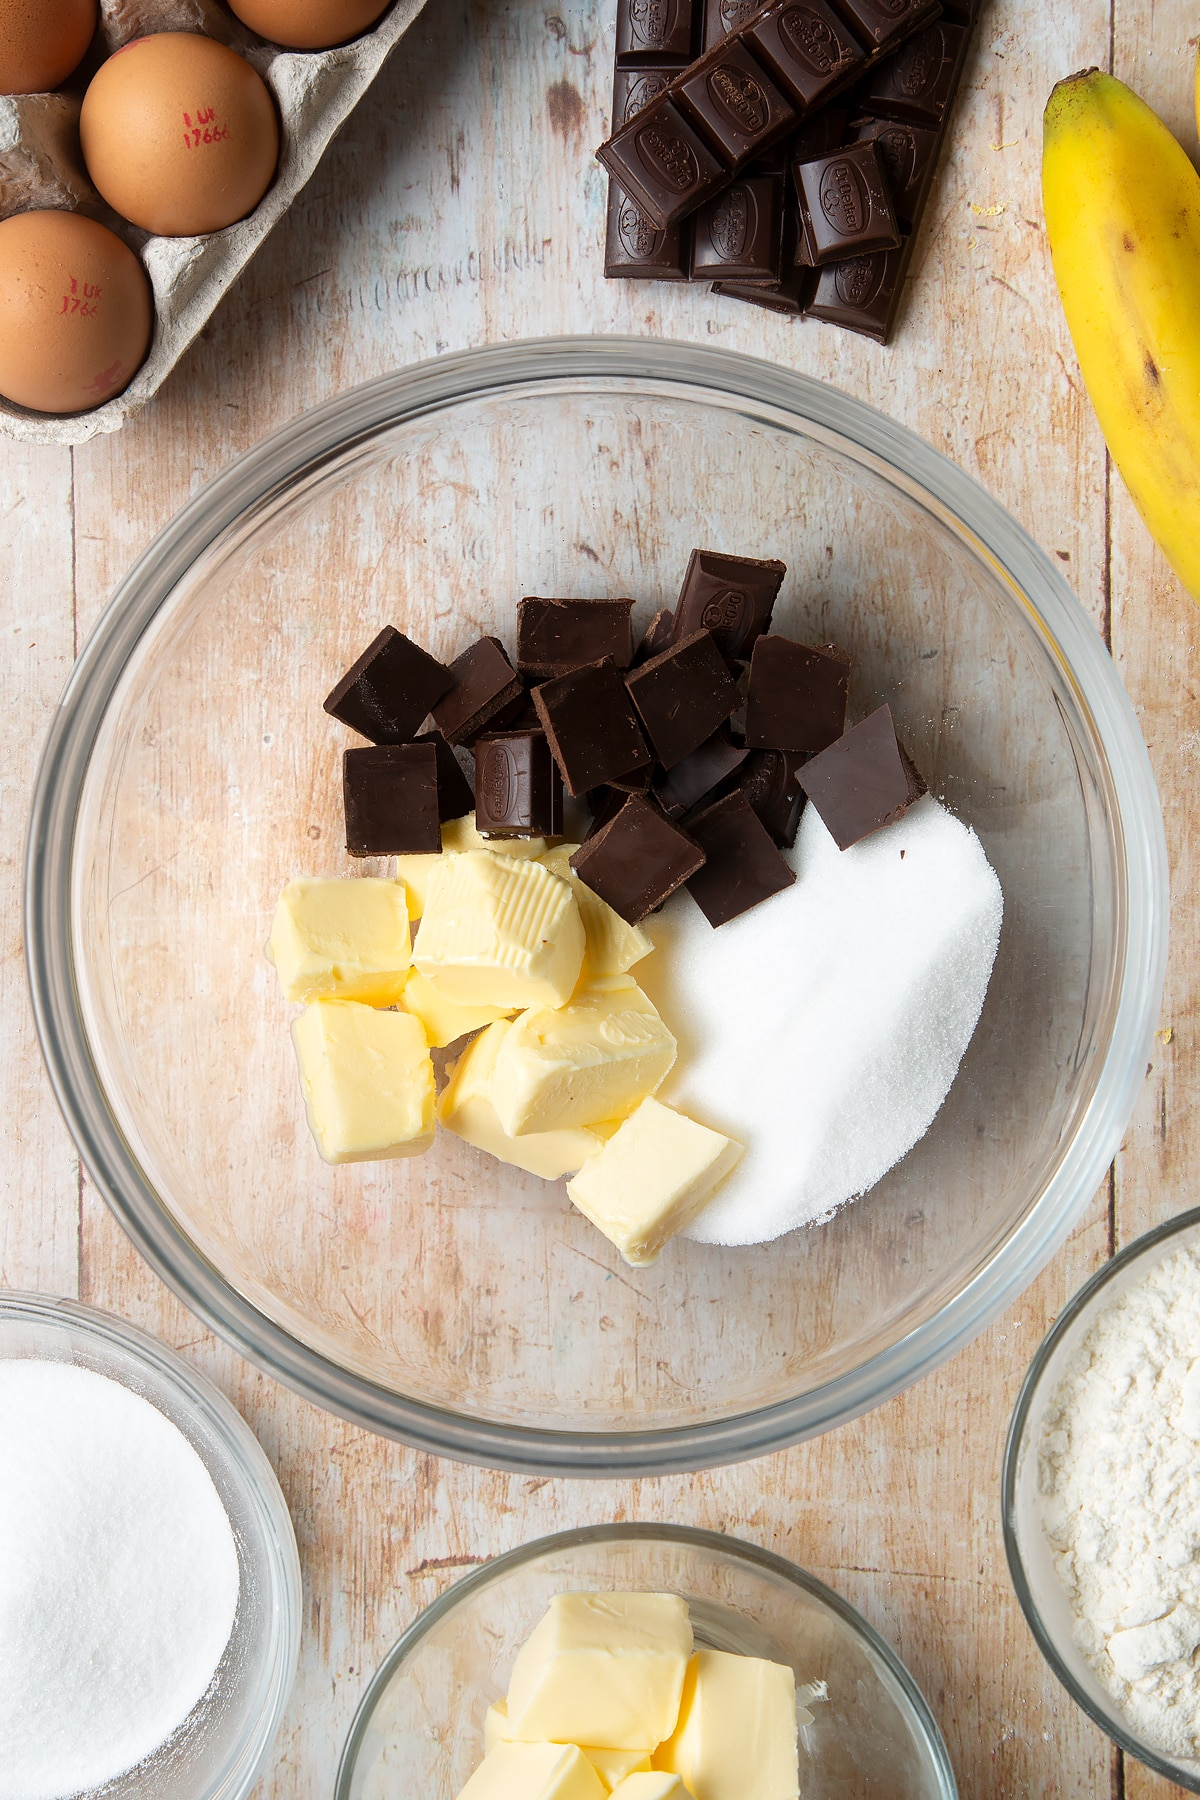 Overhead shot of butter, sugar, and chocolate in a large clear bowl